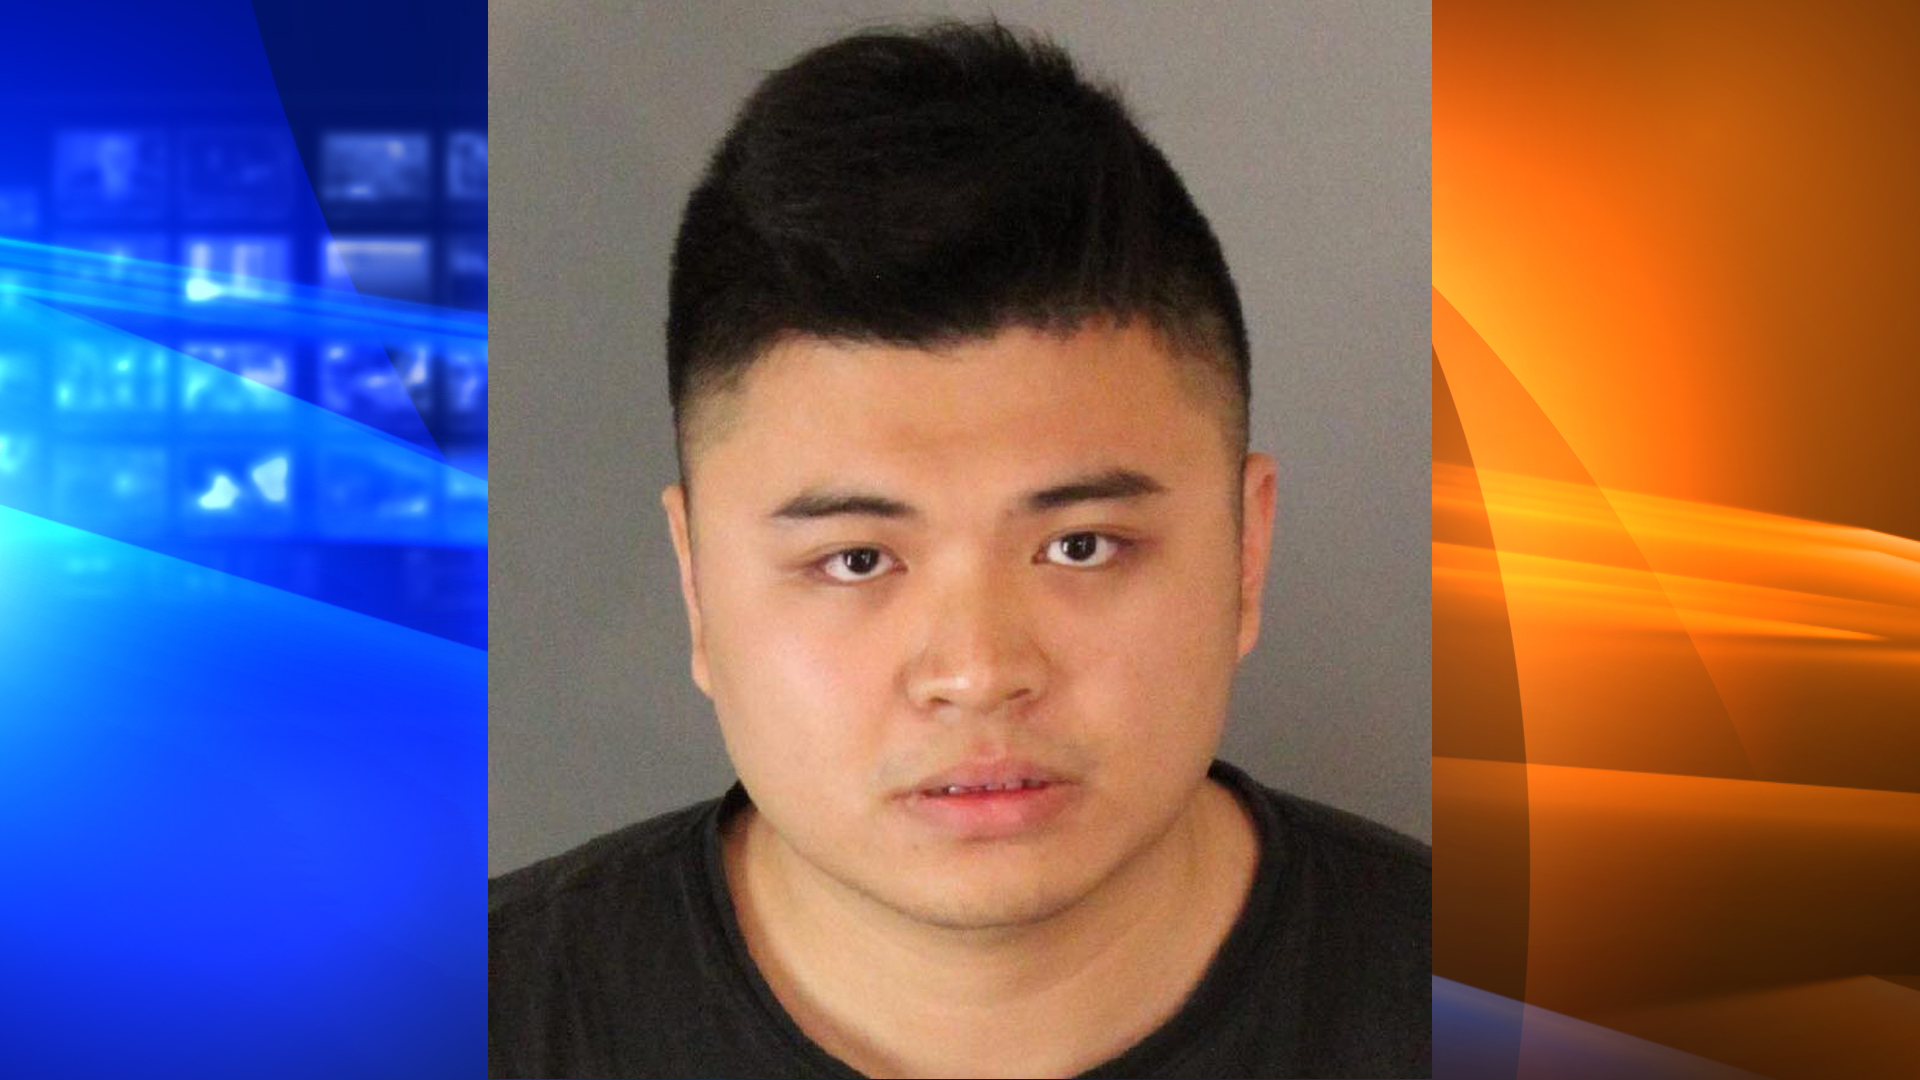 Li Haoming is seen in a booking photo released by Moreno Valley police.